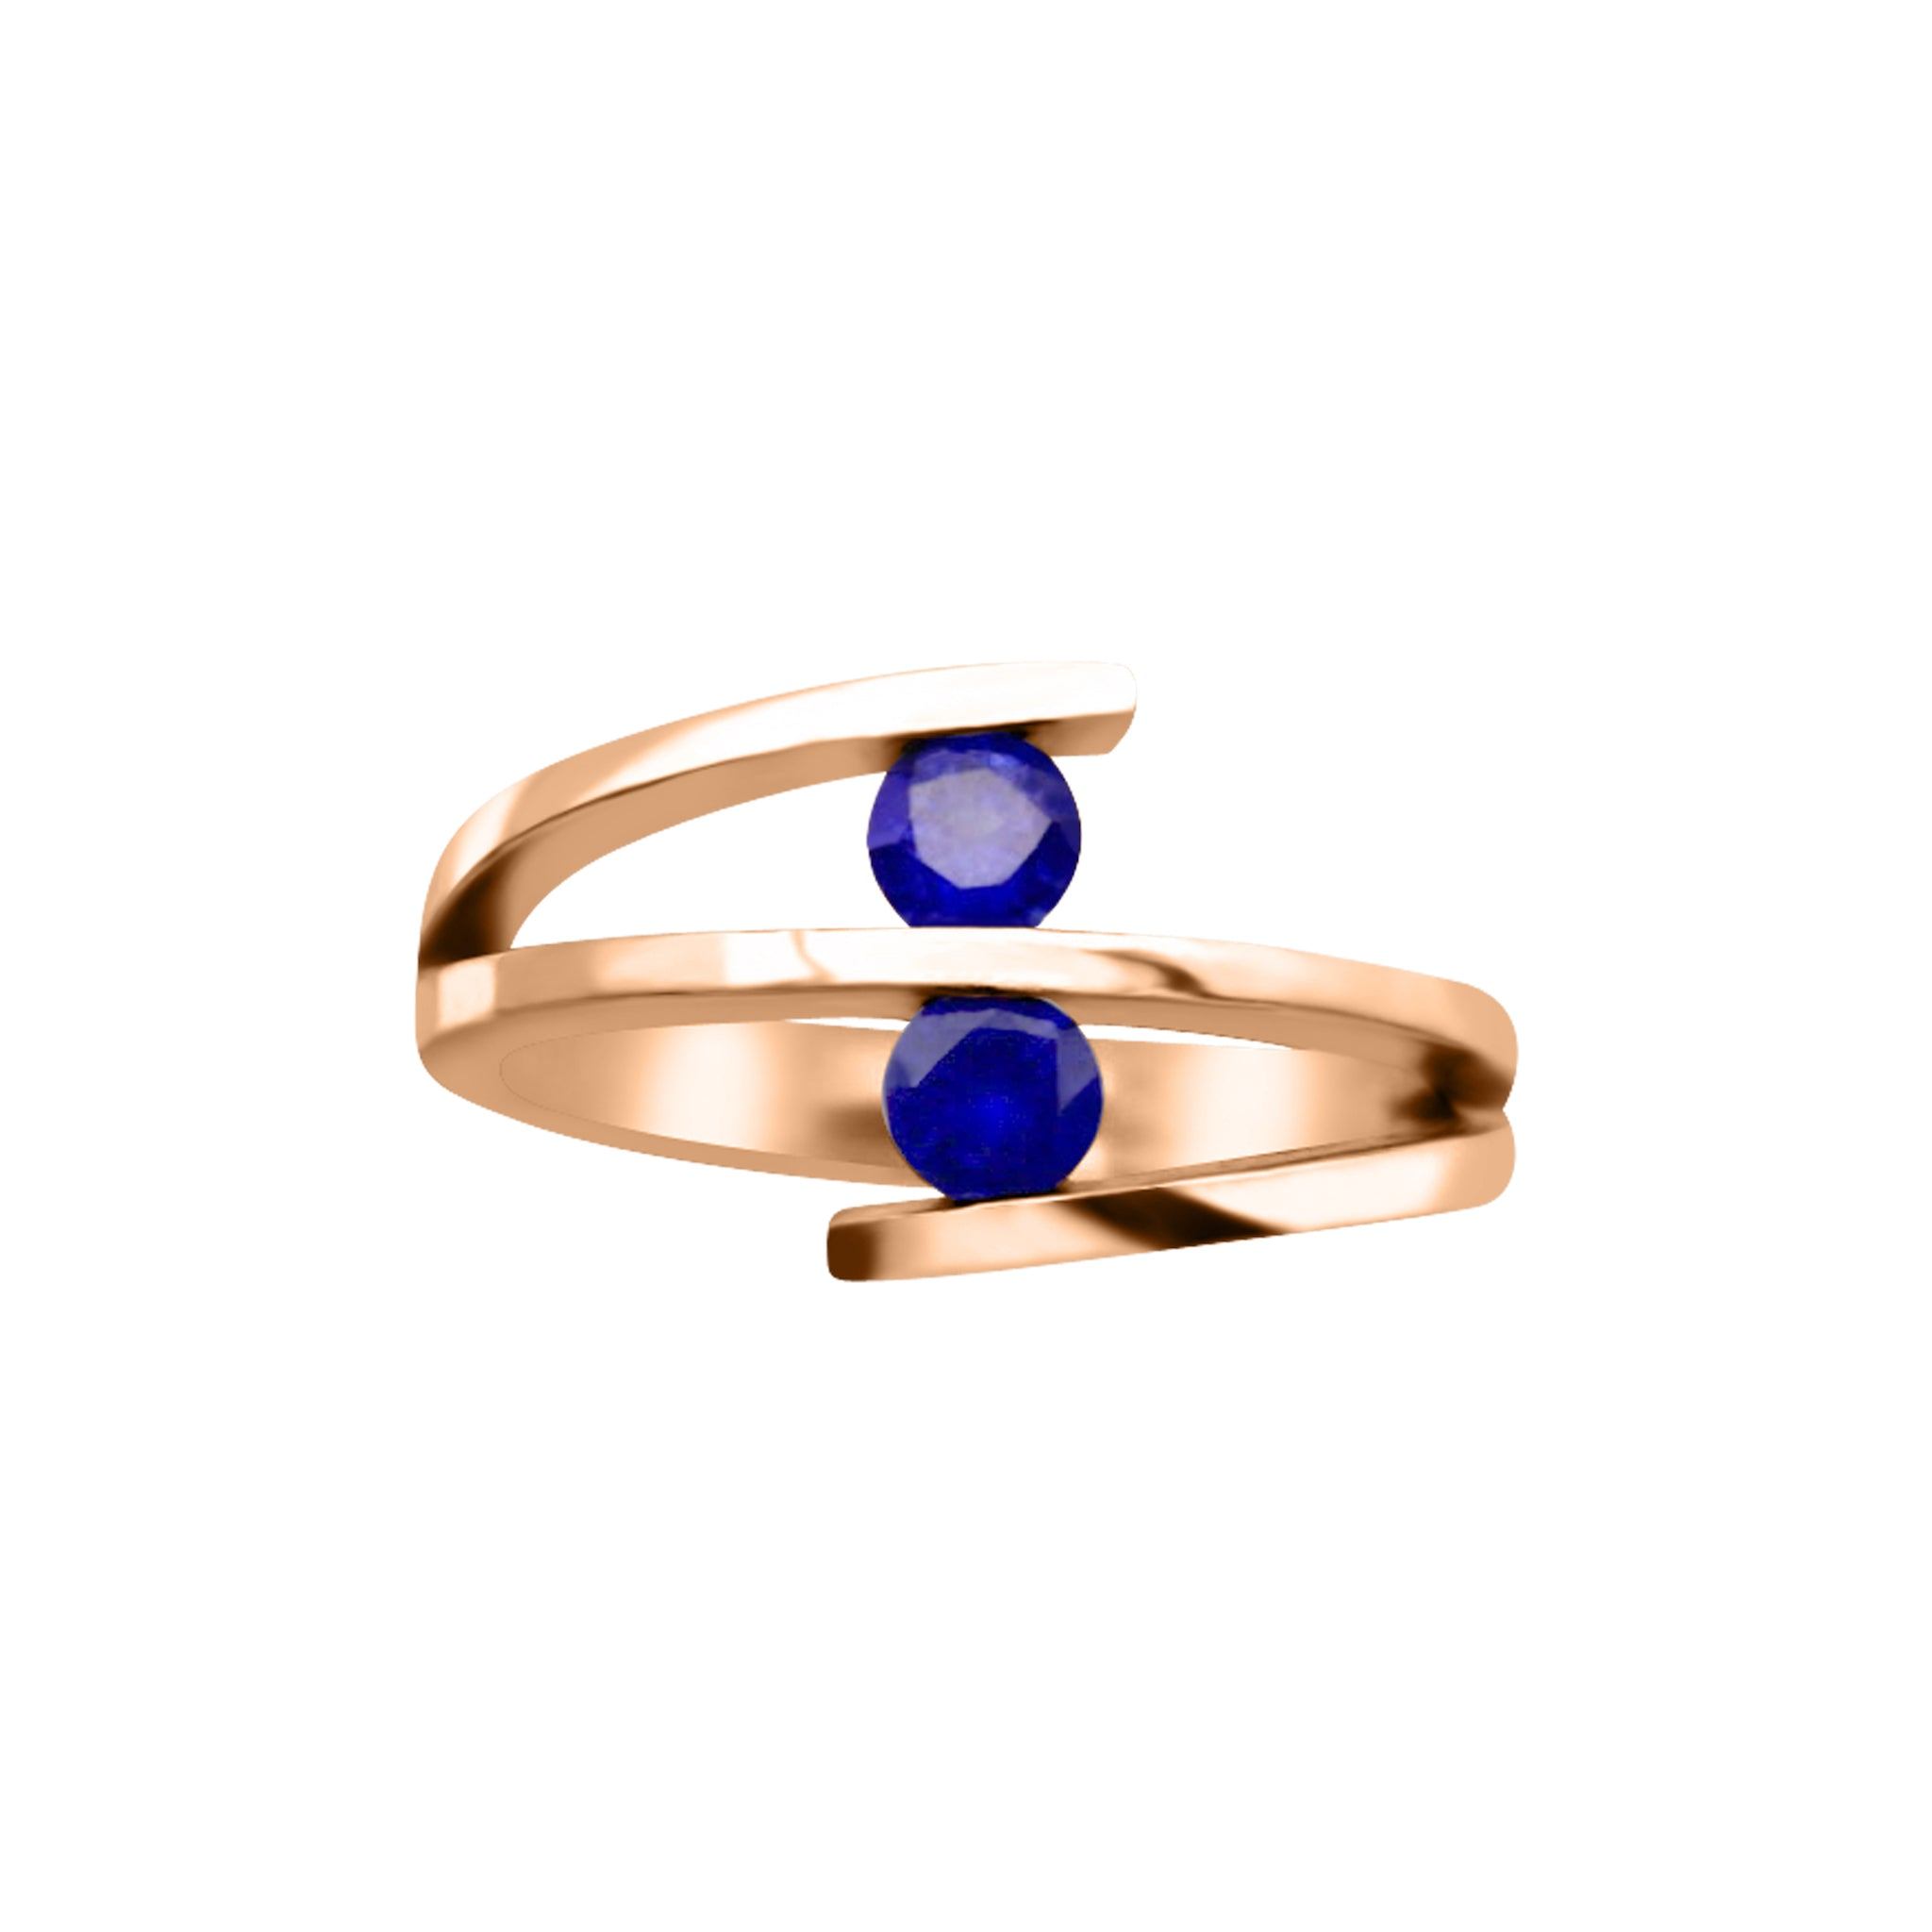 2 Gemstone Spiral Ring